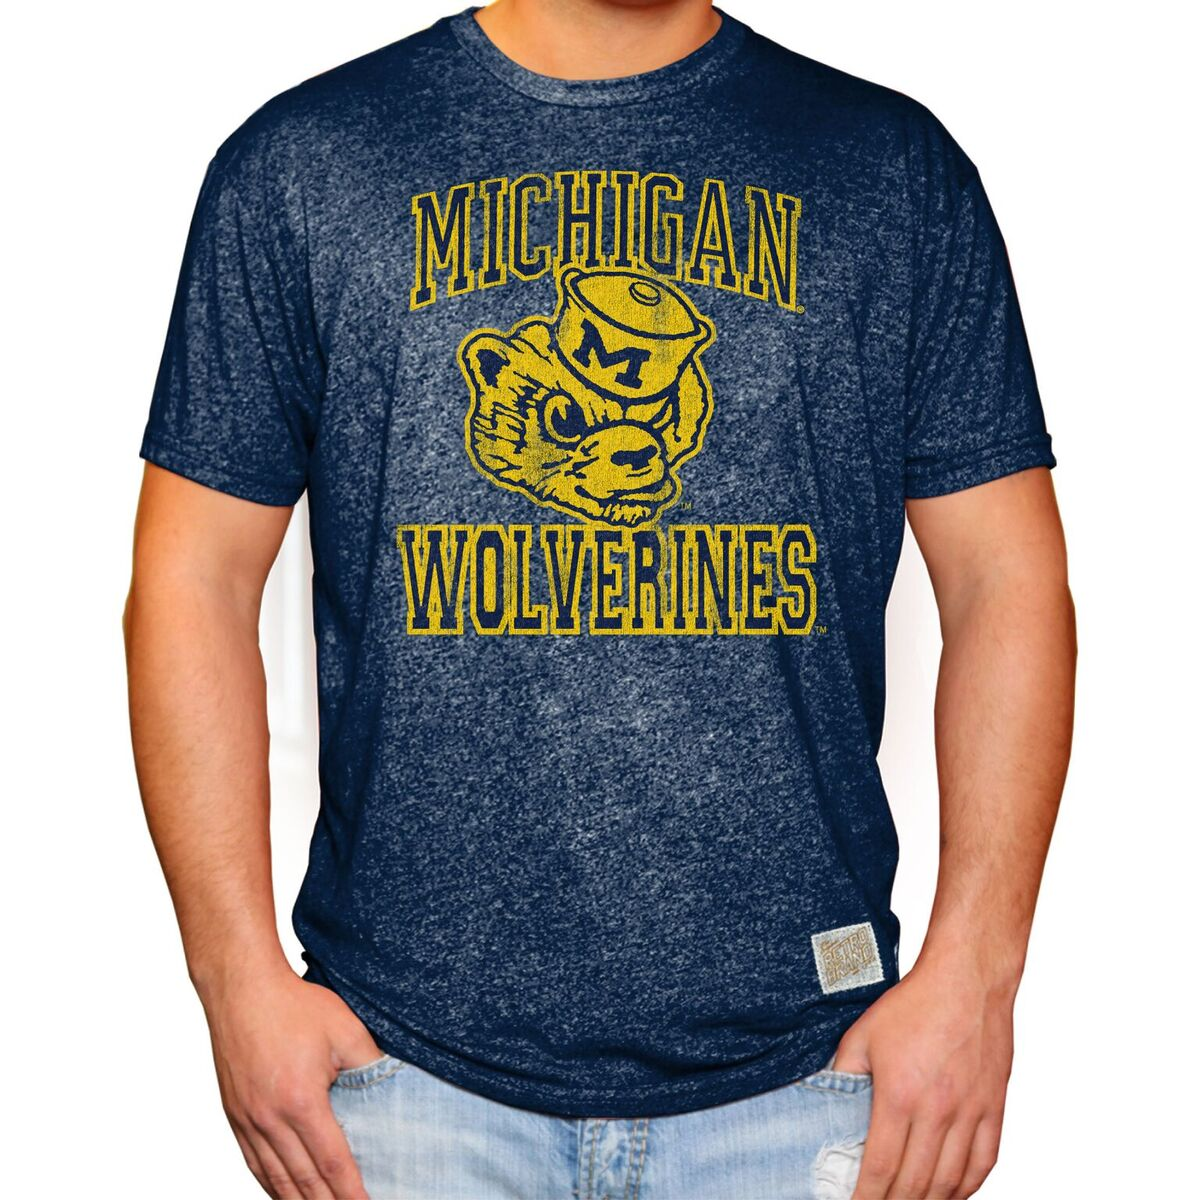 Michigan Wolverines Men's Short Sleeve Mock Twist Tee